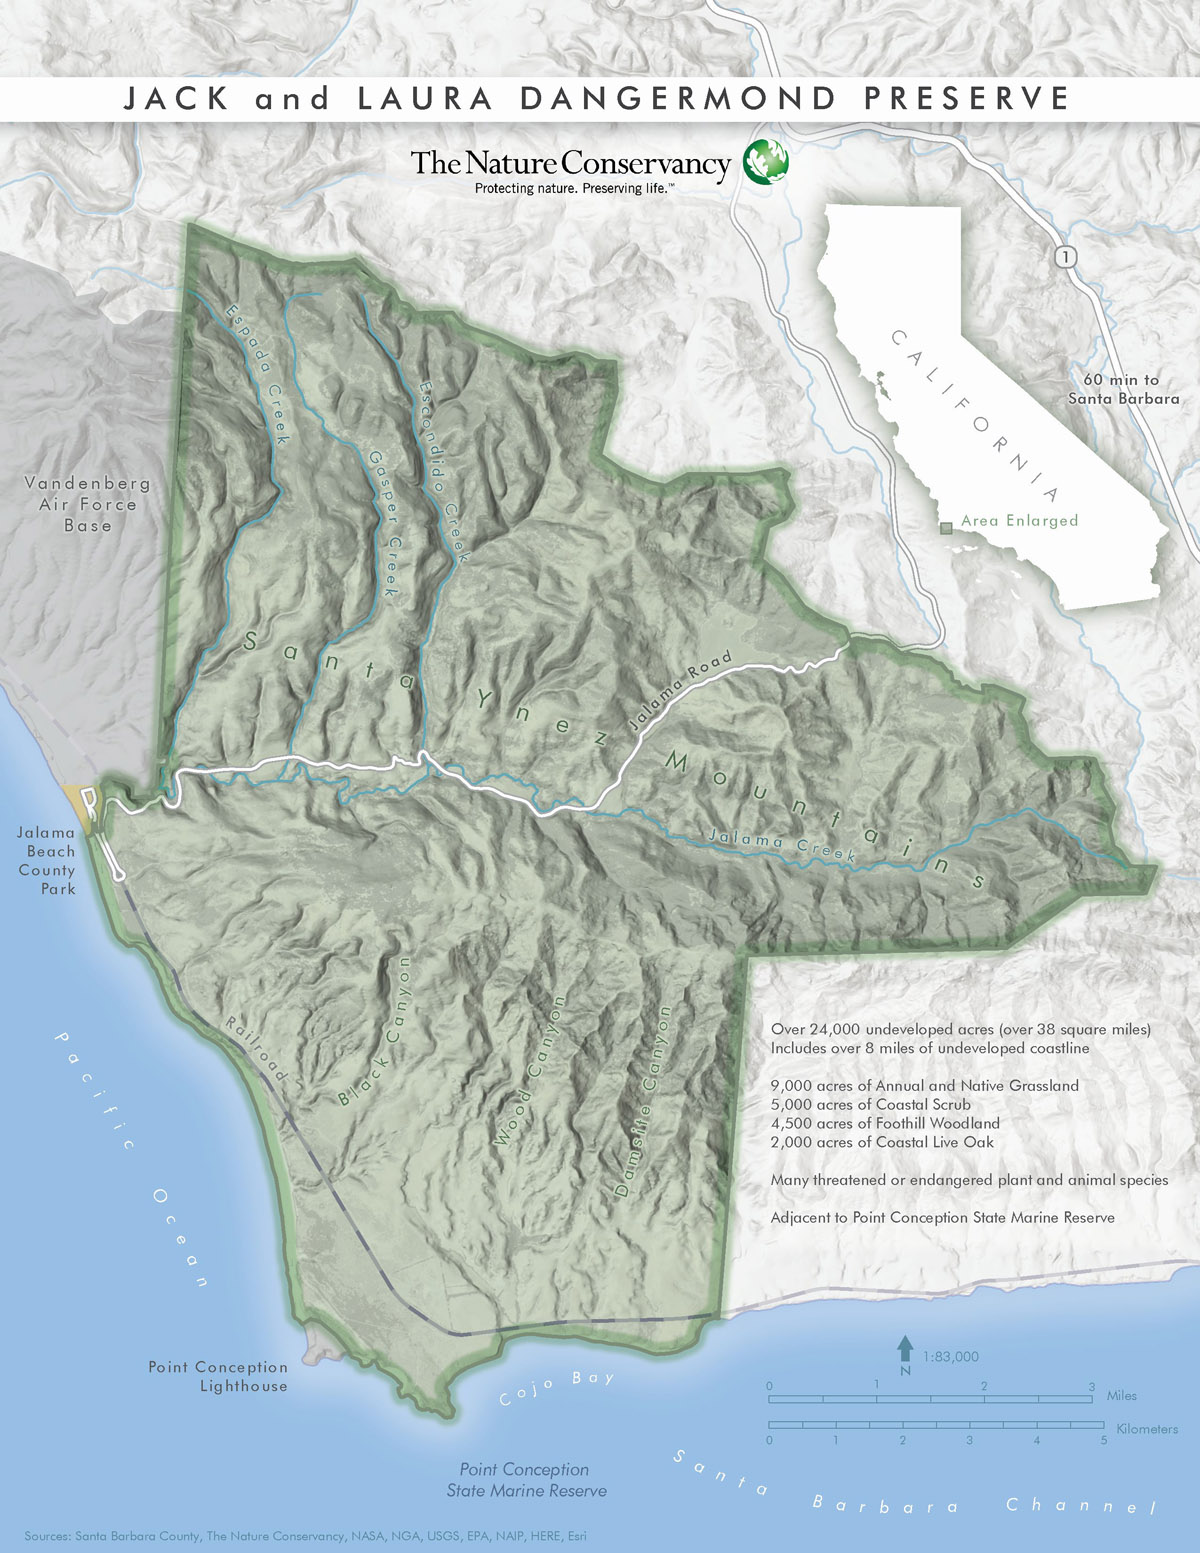 Jack and Laura Dangermond Give Major Gift to Enable Preservation of California Coastline Map on